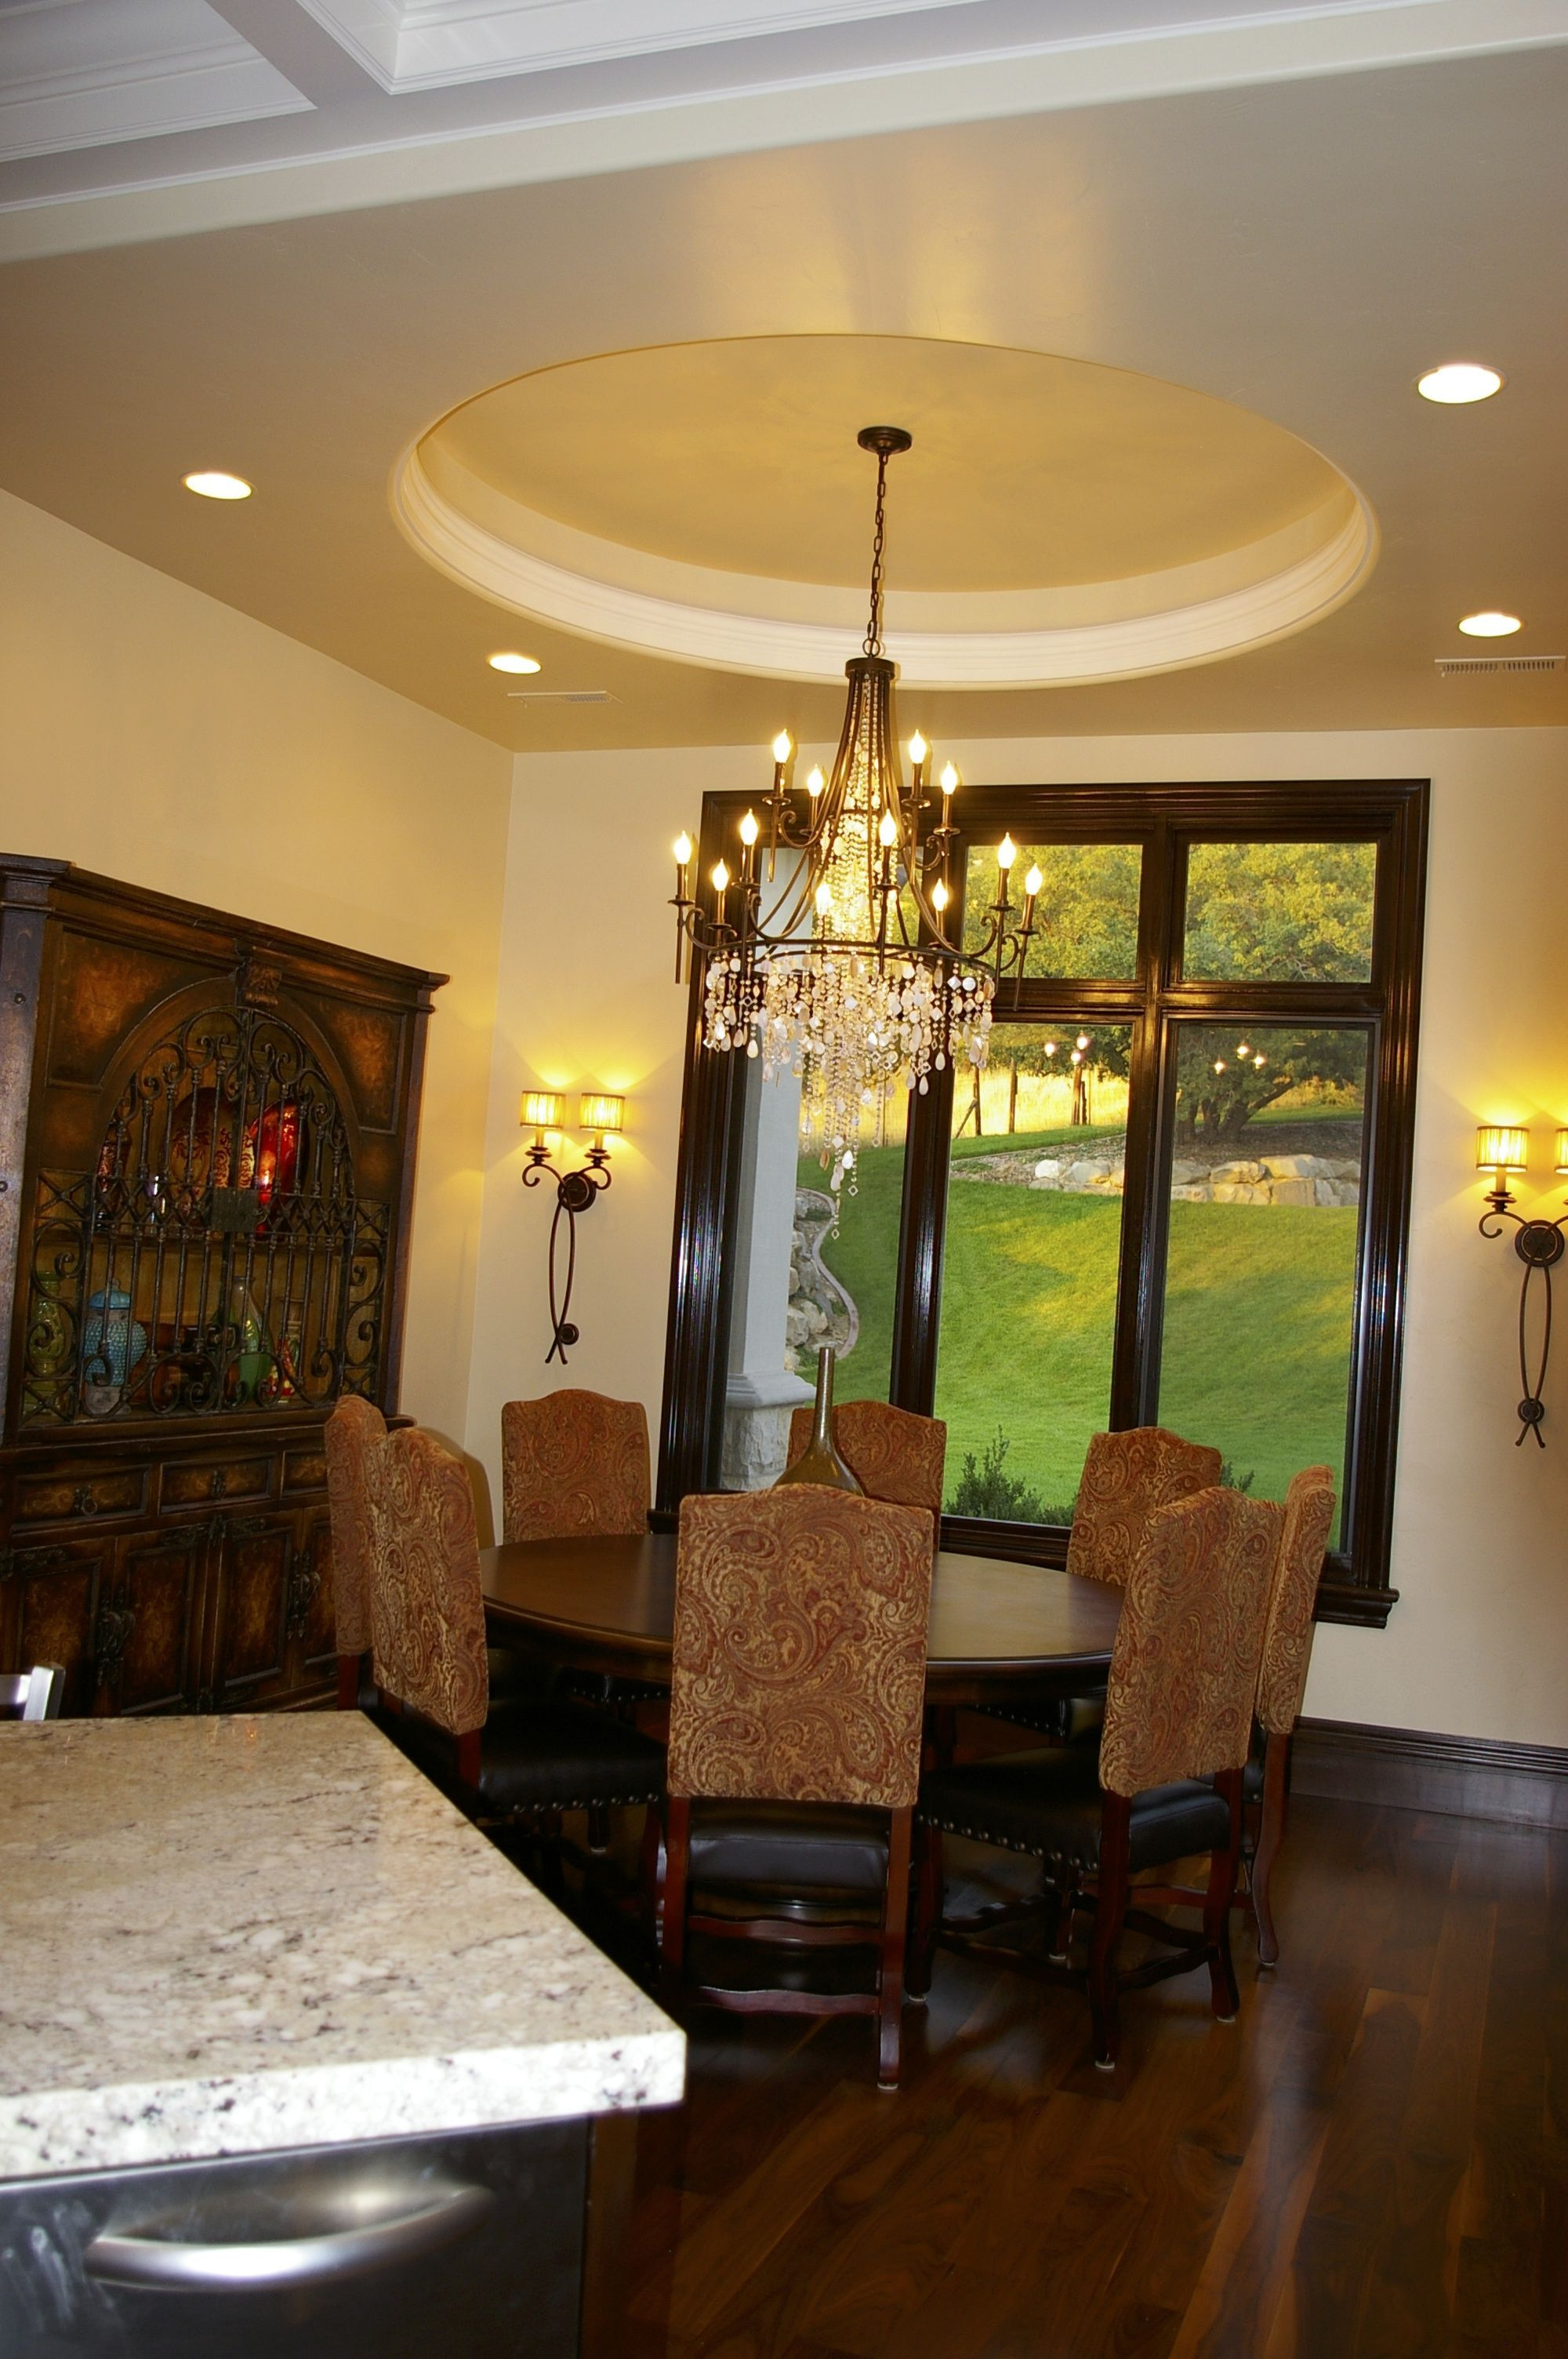 Dining Room-Tray Ceiling | Dining room colors, Dining room ...